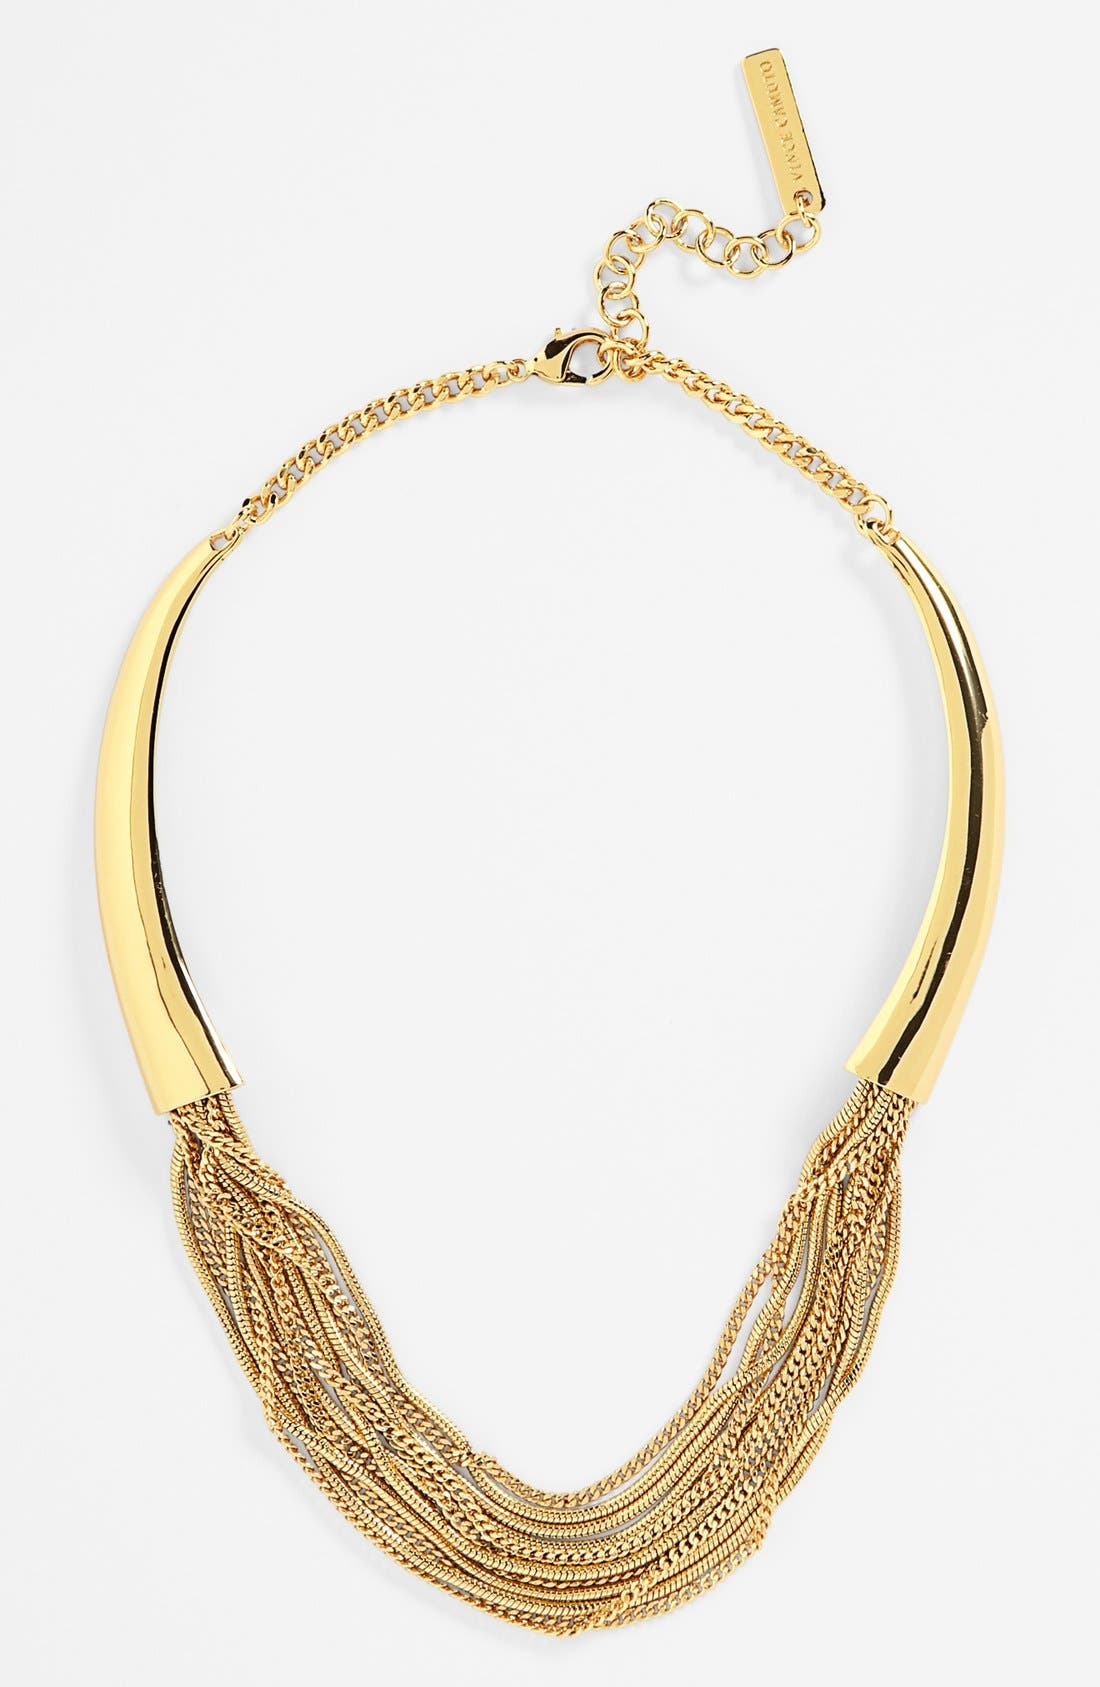 Alternate Image 1 Selected - Vince Camuto 'By the Horns' Collar Necklace